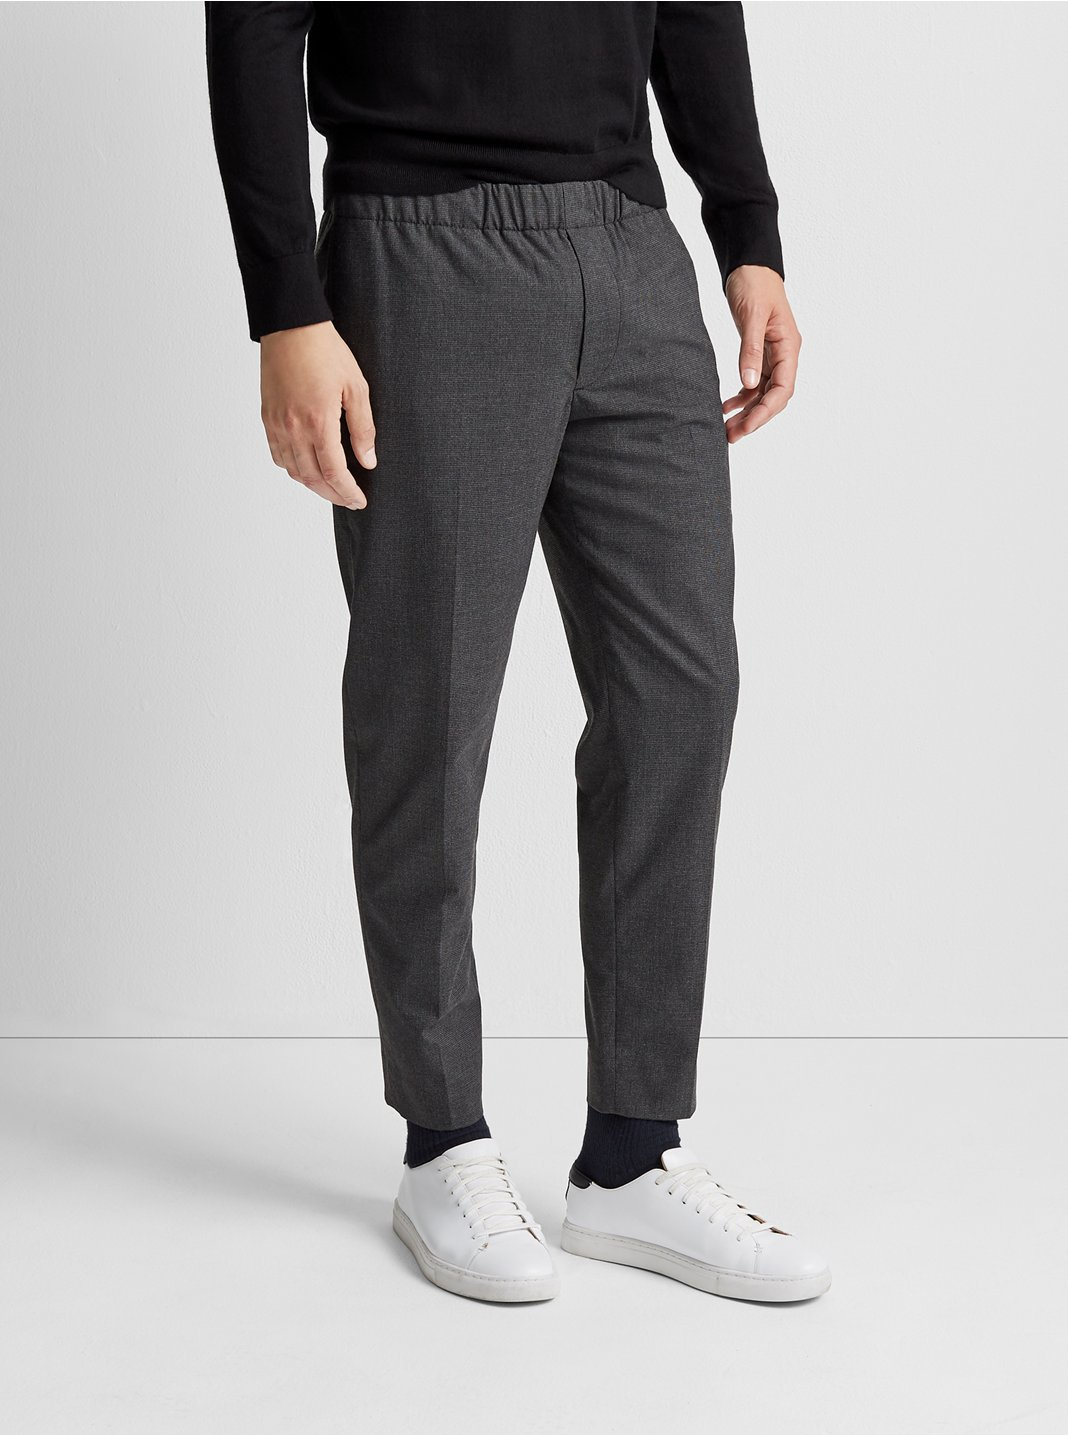 Elasticated Houndstooth Pant